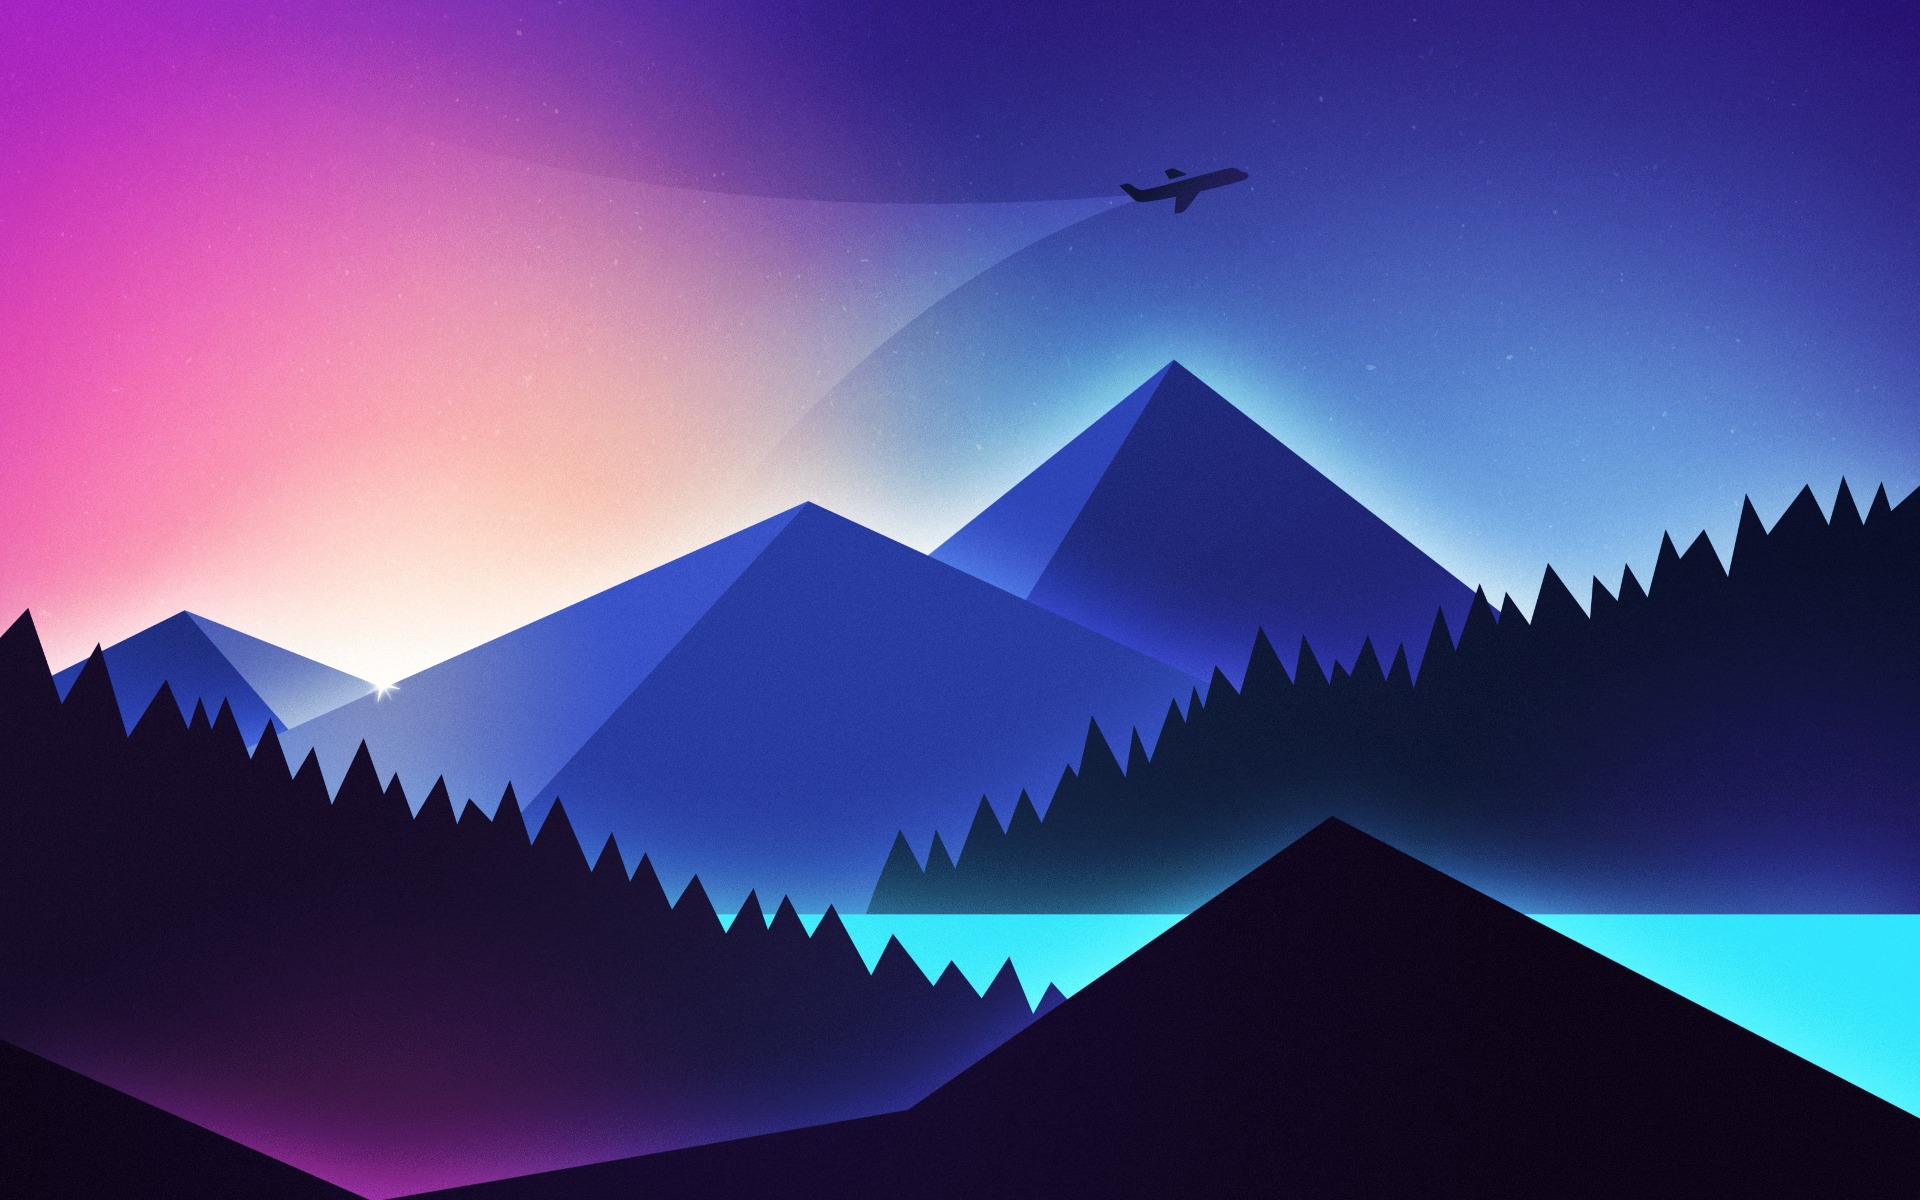 Airplane Minimal Gradient Hd 4k Wallpaper